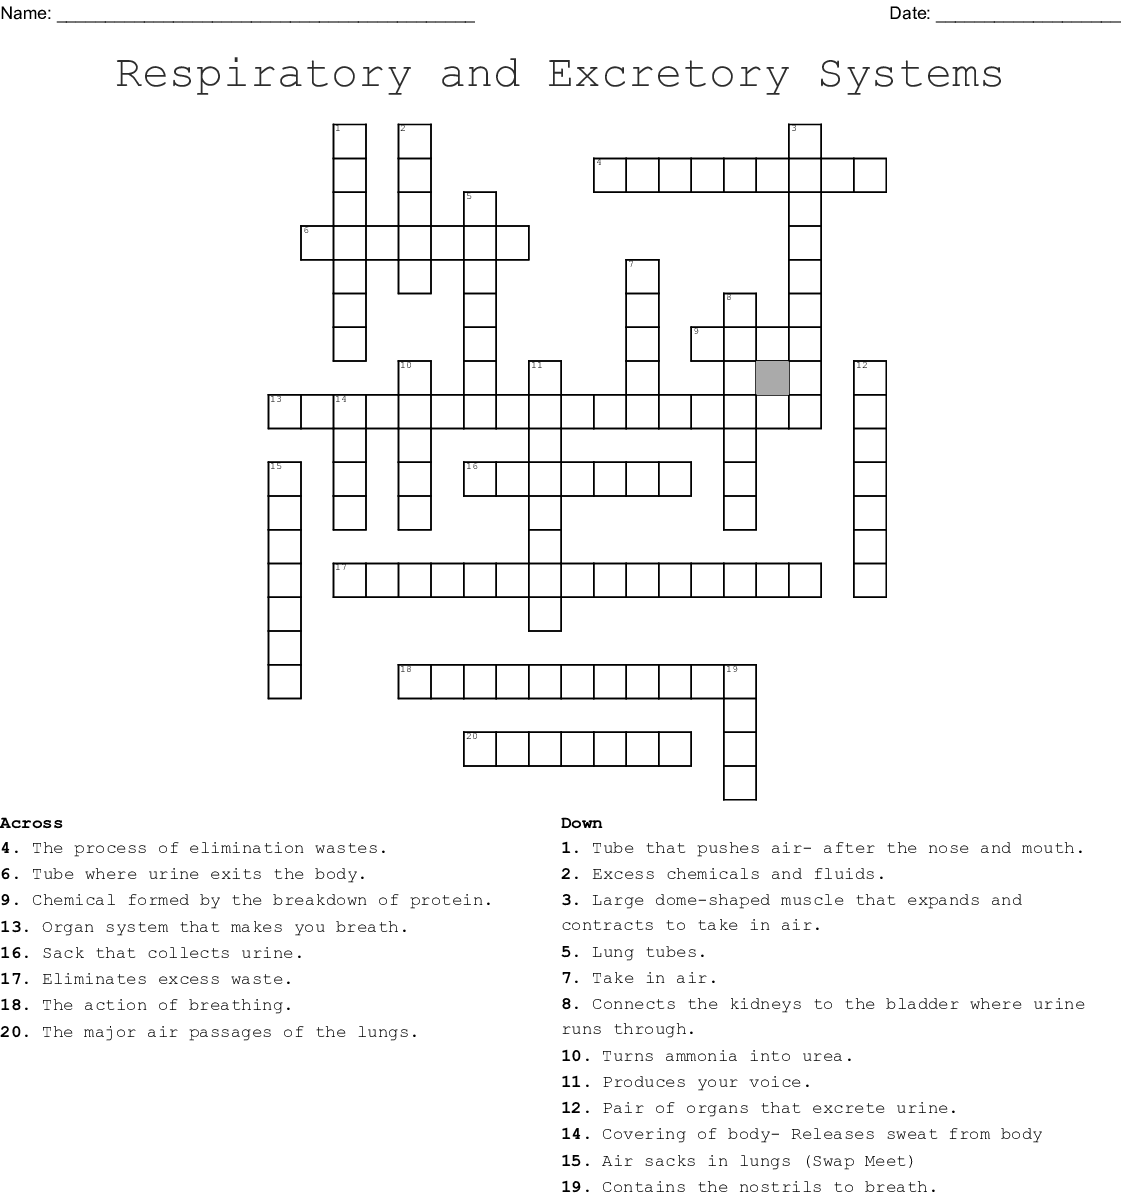 Respiratory And Excretory System Crossword